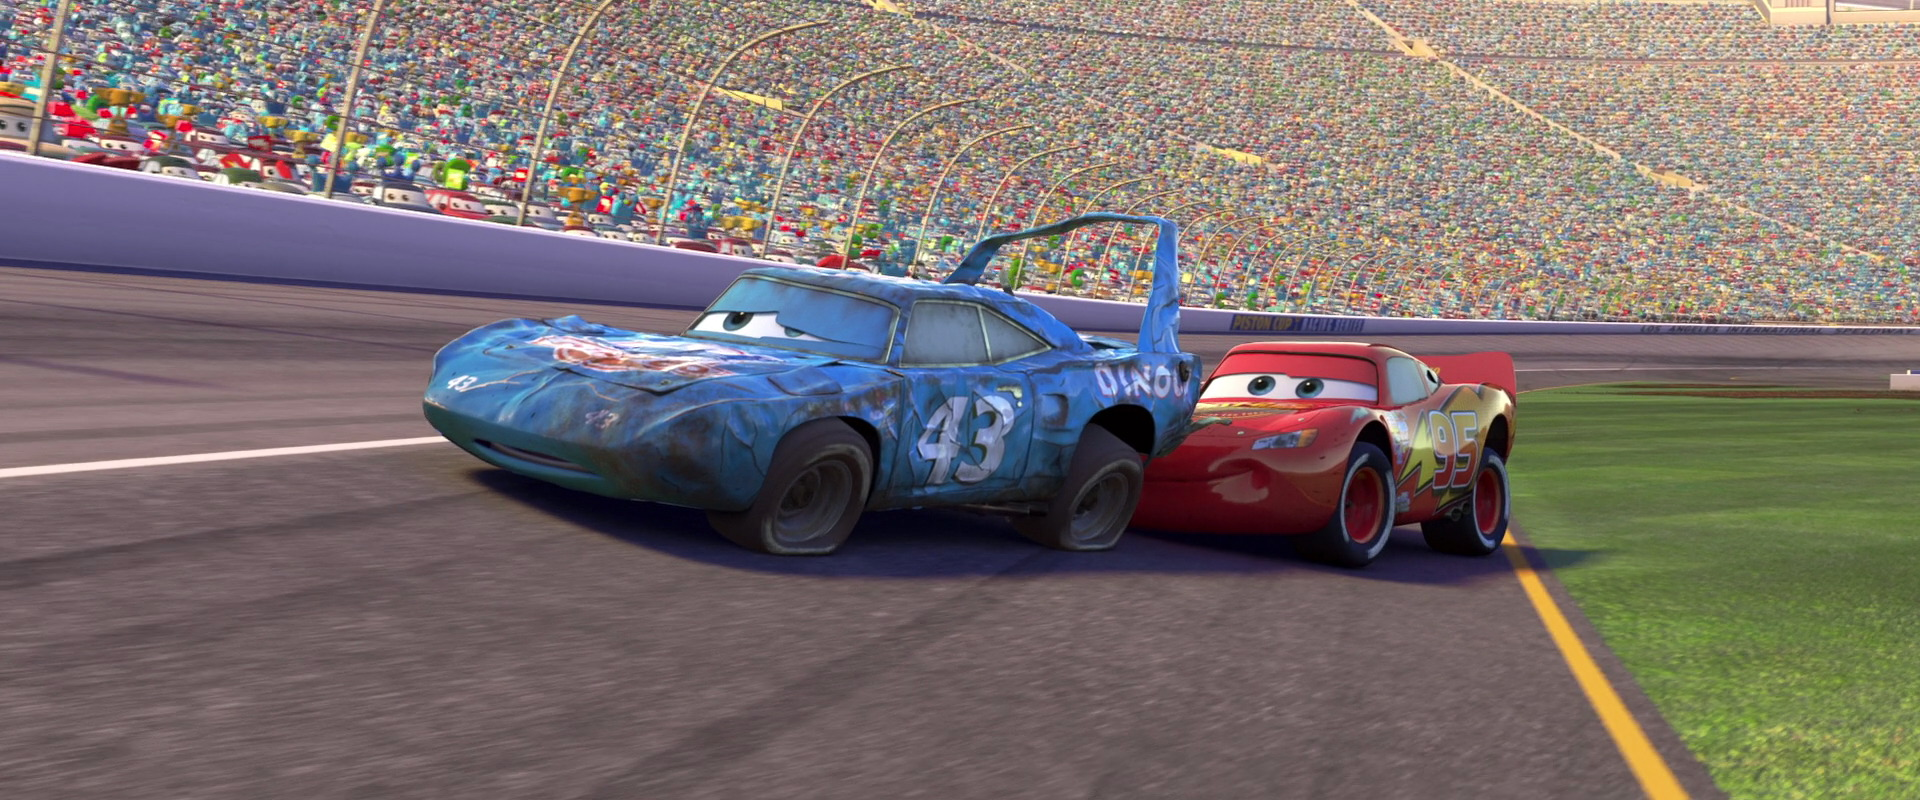 McQueen helps to have The King finish his last race. & Lightning McQueen | Disney Wiki | FANDOM powered by Wikia